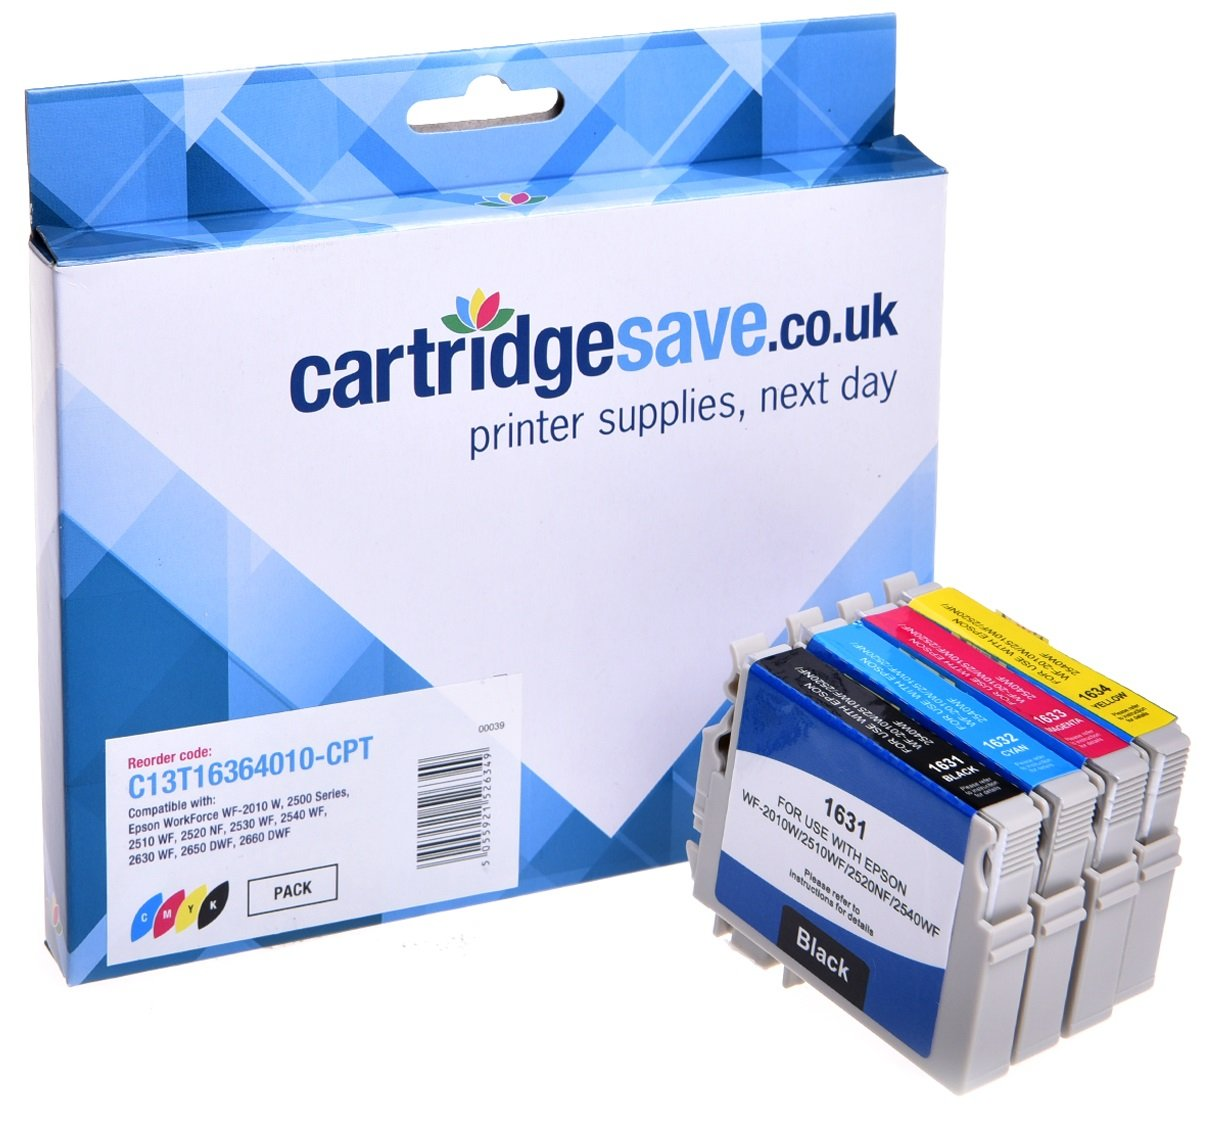 Compatible 4 Colour High Capacity Epson 16XL Ink Cartridge Multipack - (Replaces T1636 contains T1631/T1632/T1633/T1634 Pen and Crossword Inkjet Printer Cartridges)